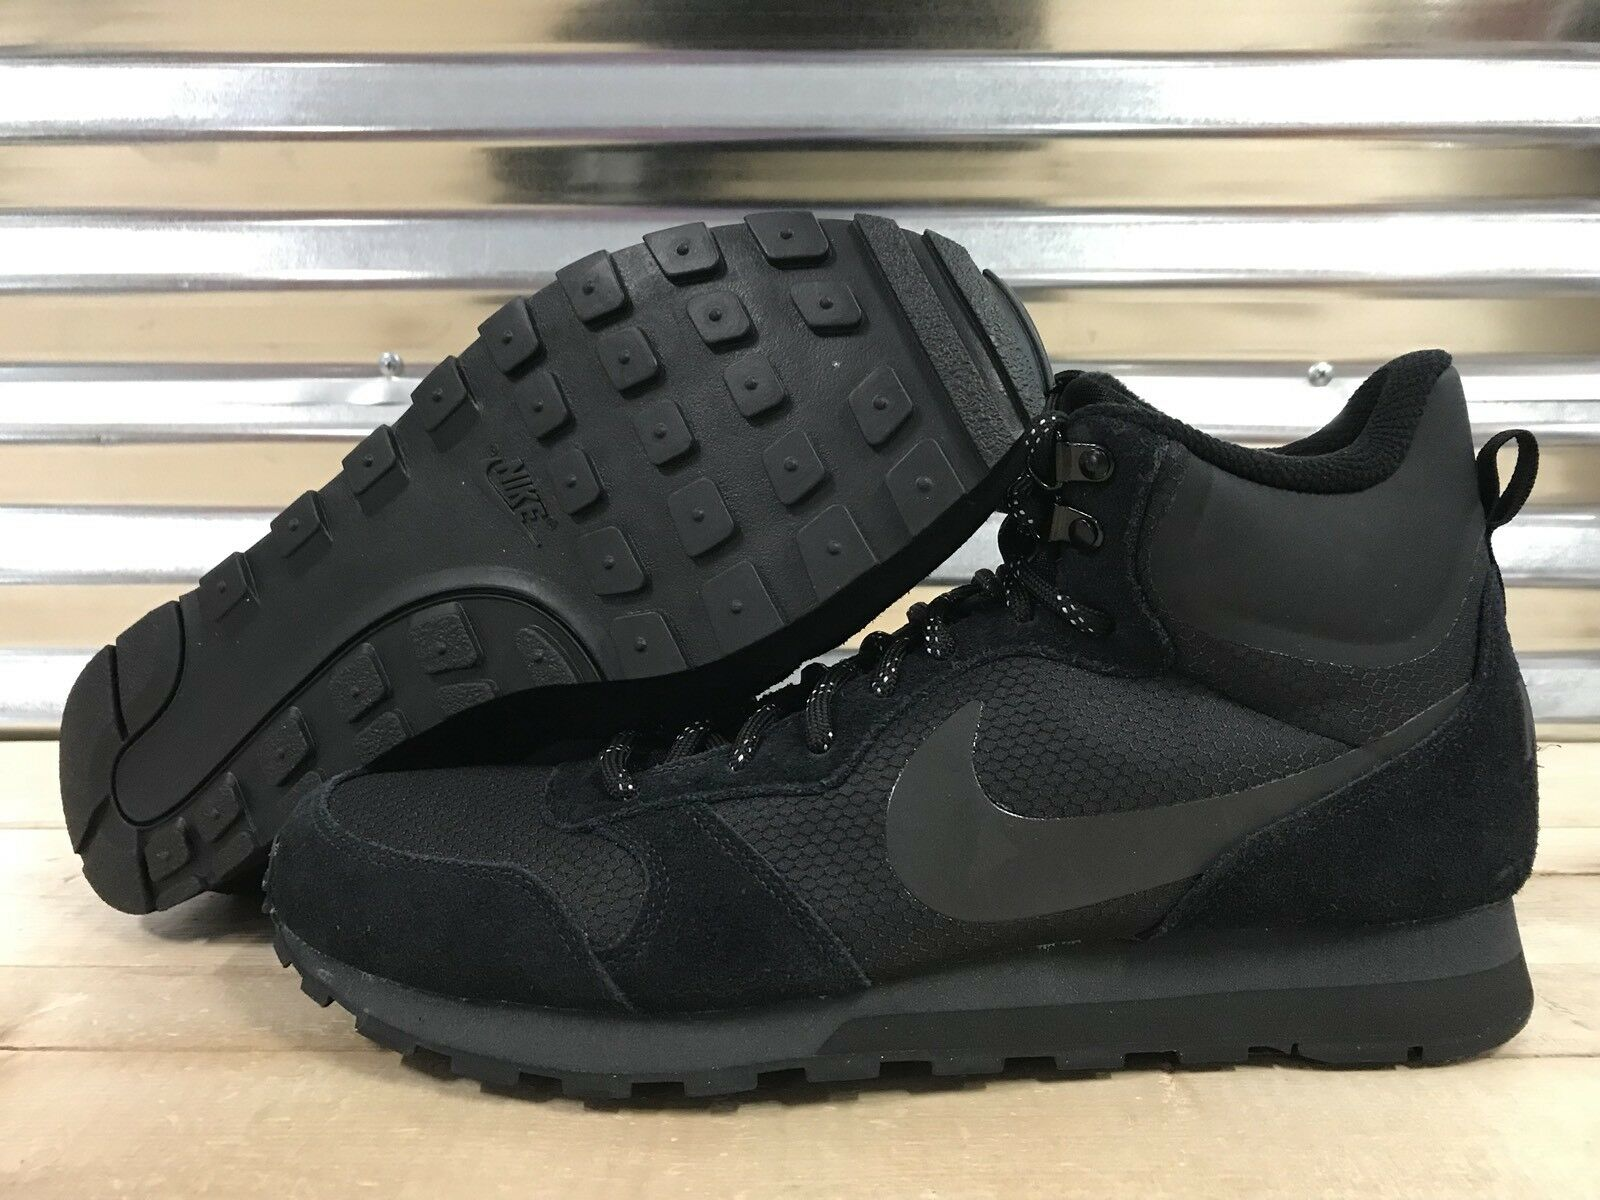 Nike MD Runner 2 Mid PRemium Shoes Sneakerboots Black Out Price reduction  Special limited time